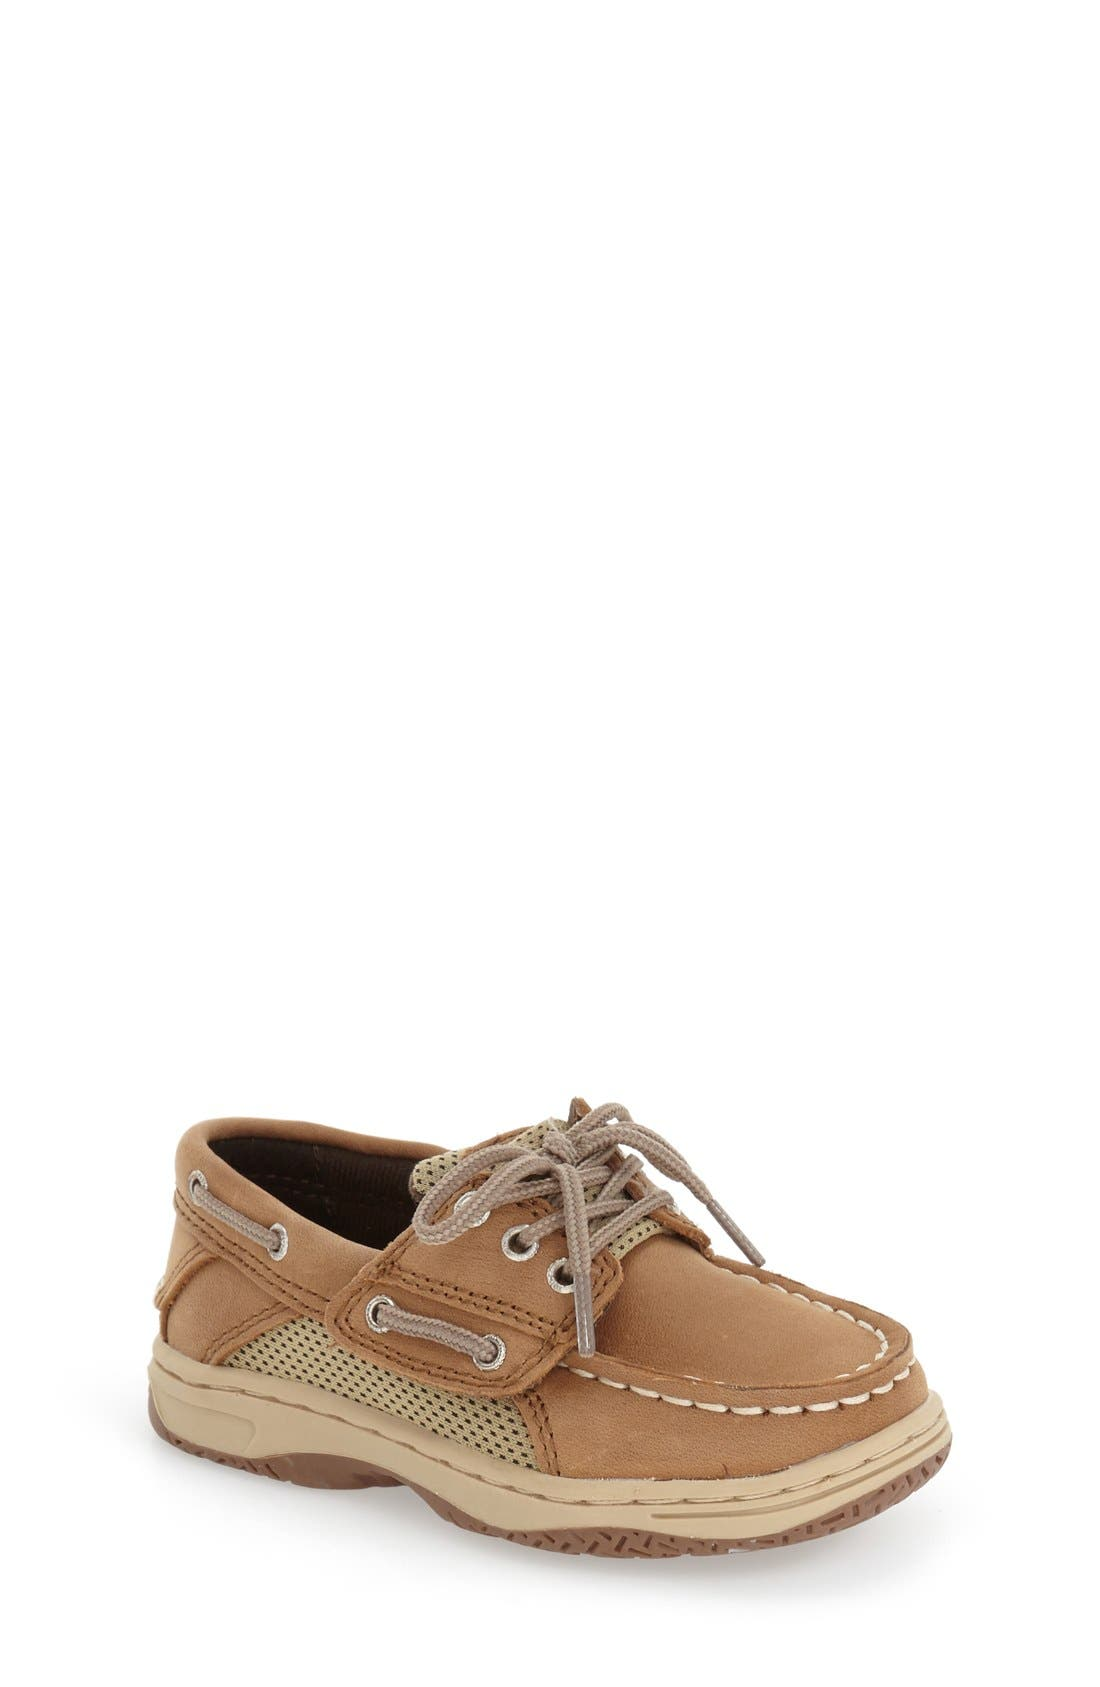 Sperry Kids 'Billfish' Boat Shoe (Walker & Toddler)